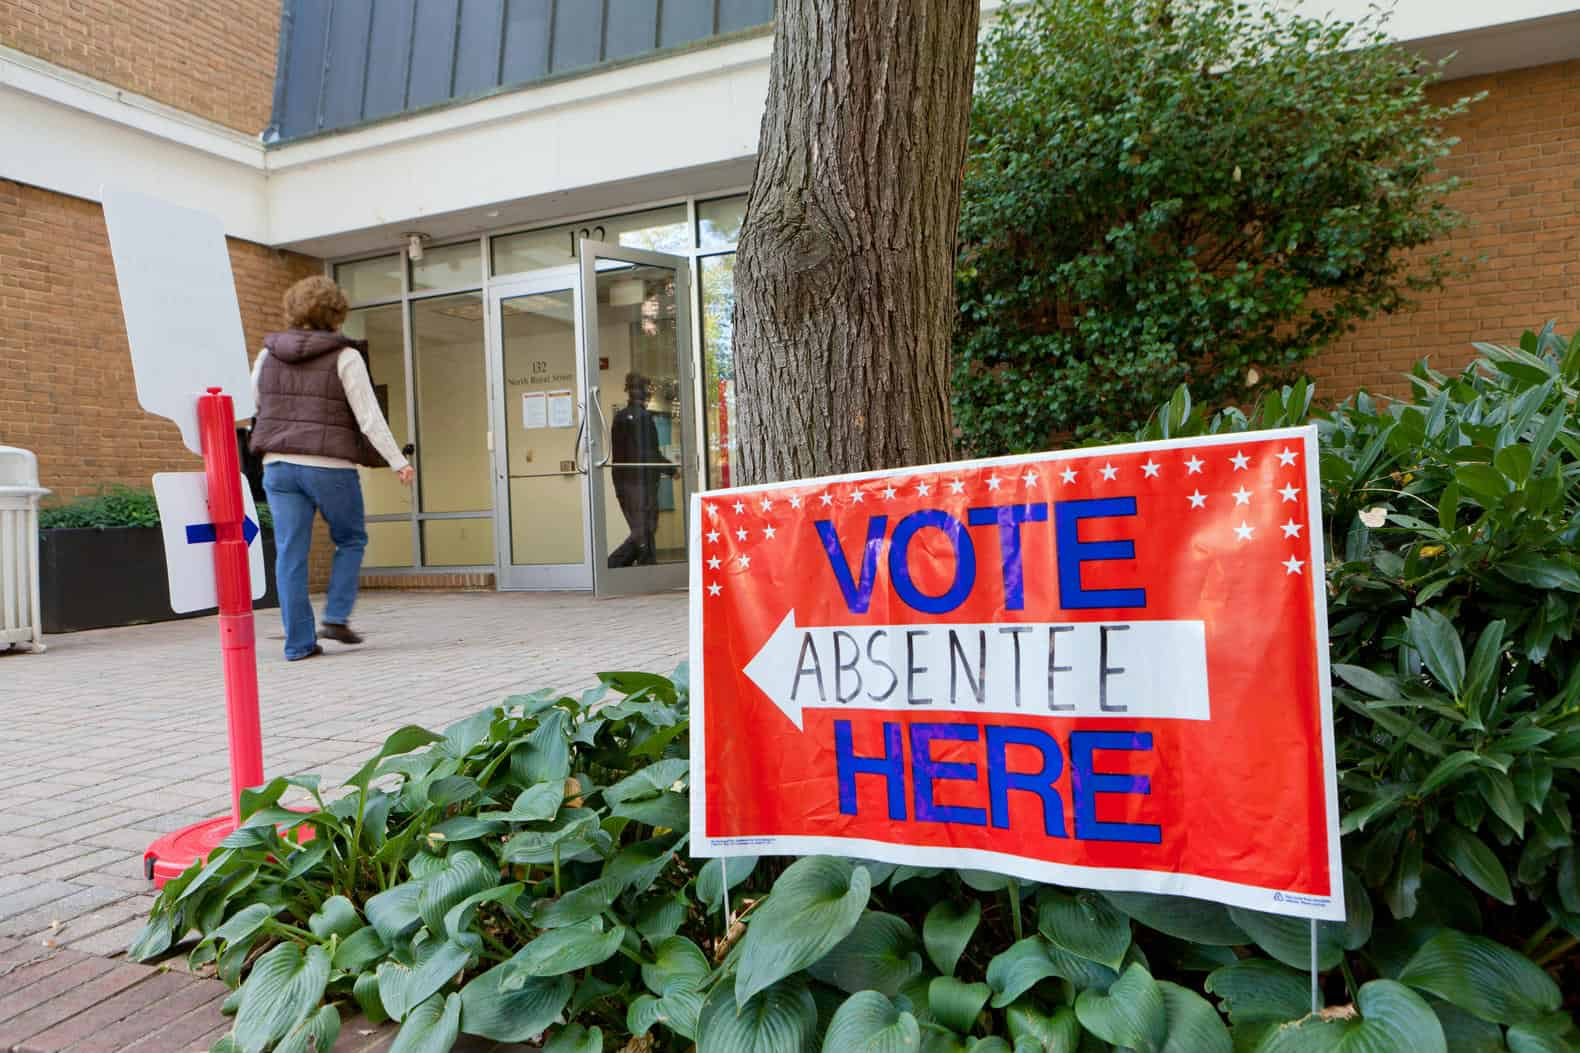 Alexandria, Virginia voters who will be traveling or otherwise unable to go to the polls Tuesday, June 12 have until Tuesday, June 5, 2018 to apply for an absentee ballot. Details...